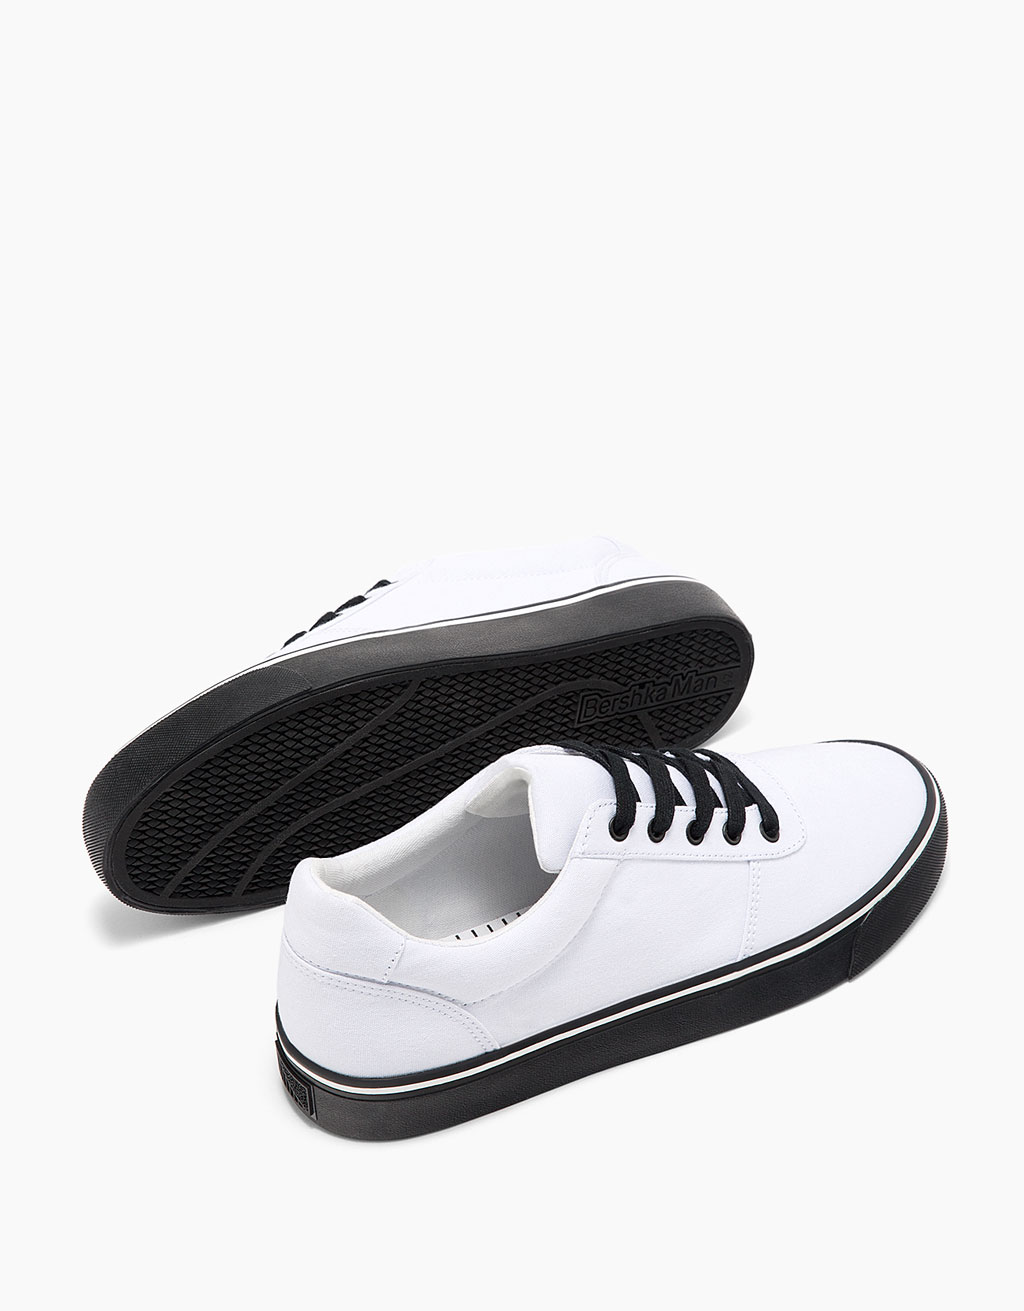 Men's fabric sneakers with contrasting outsole and laces